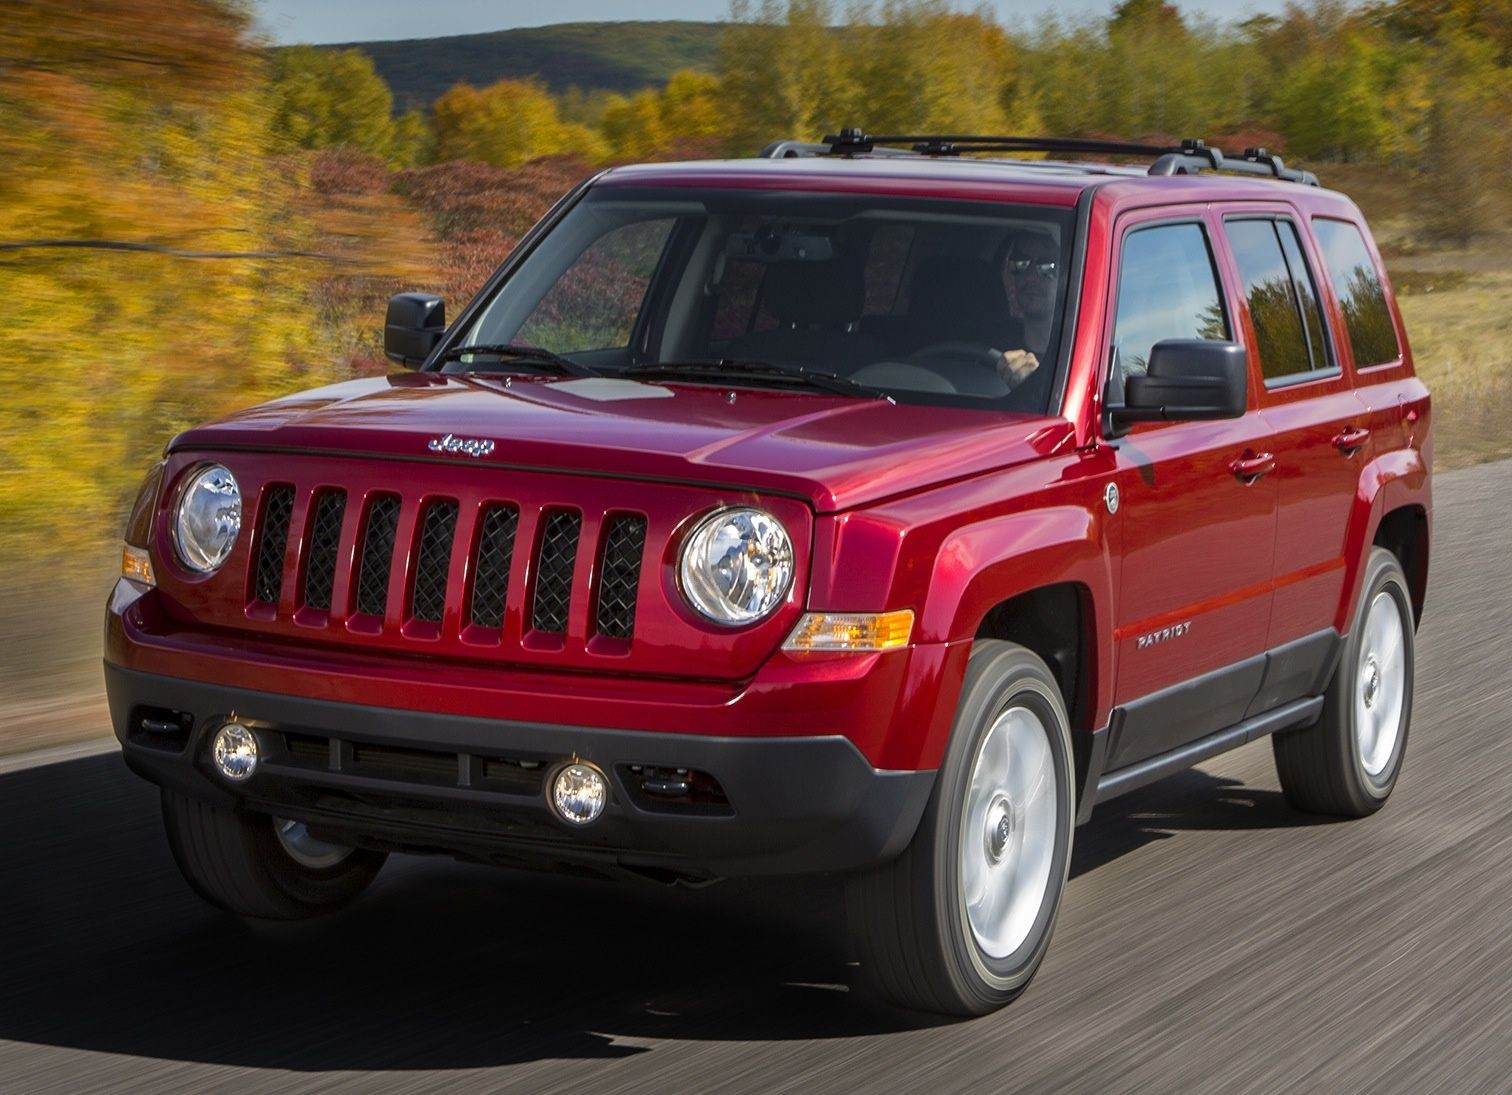 2015 Jeep Patriot 4 Tammy (With images) Jeep patriot